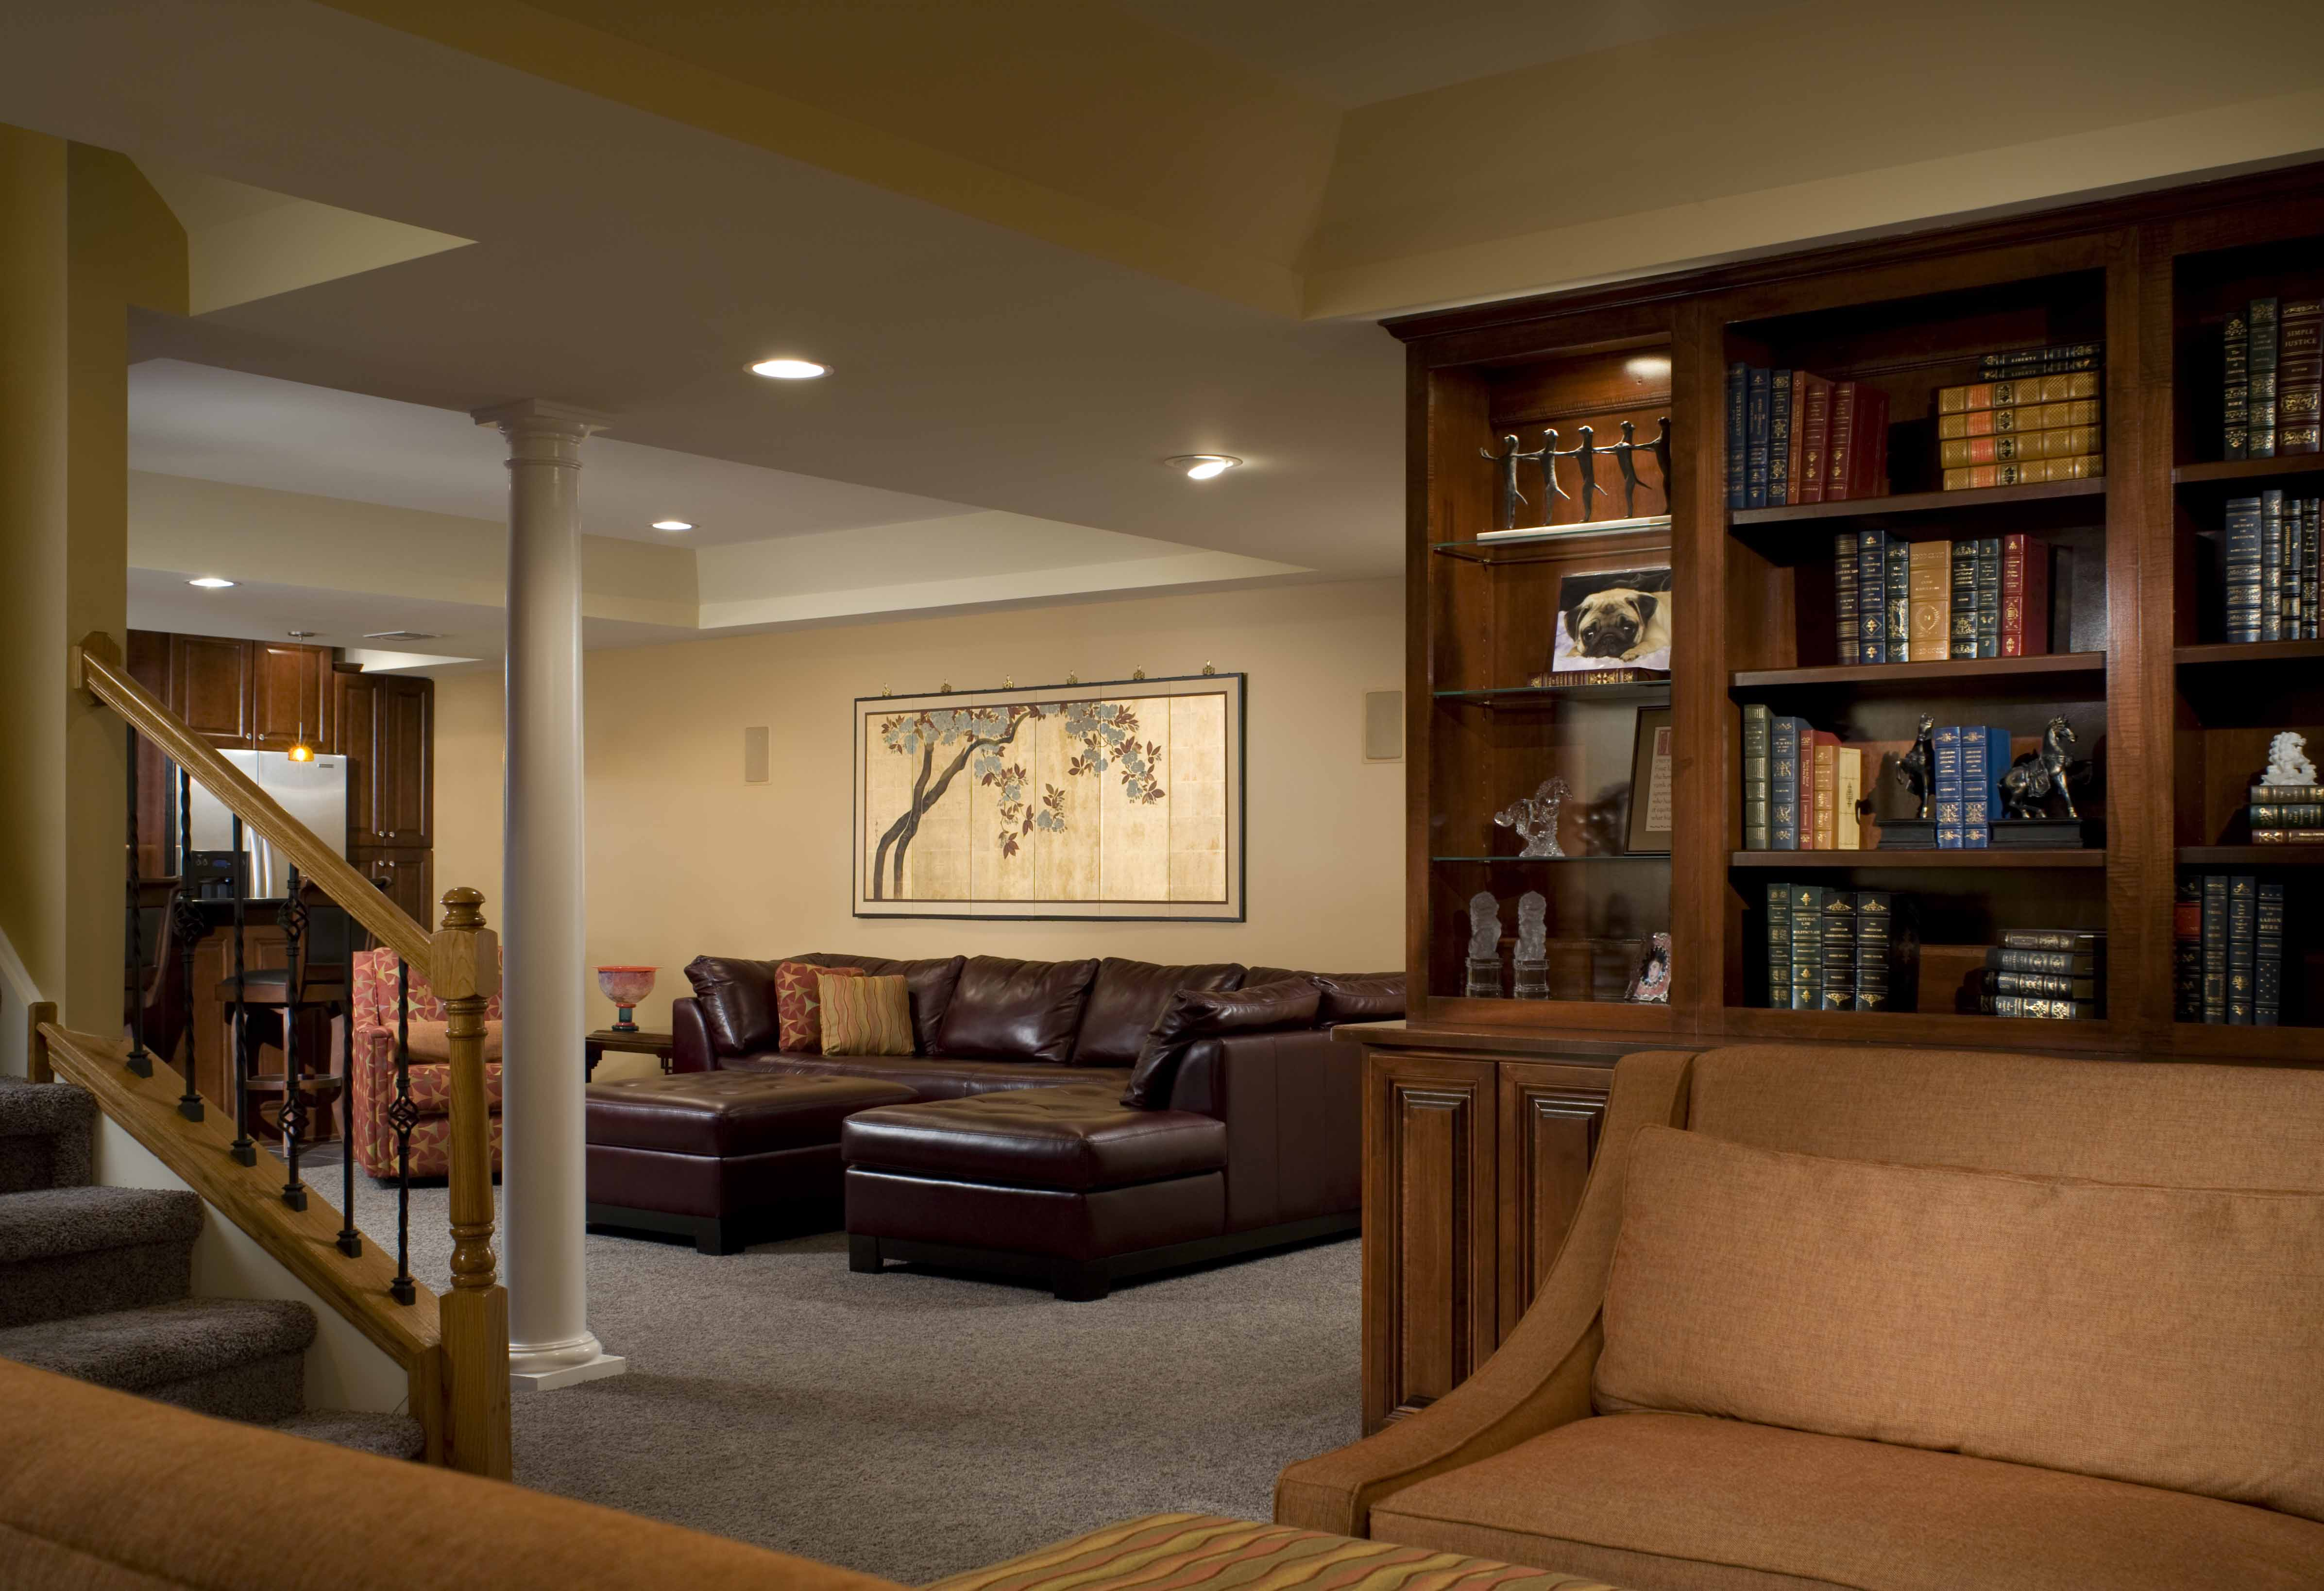 Basement Renovation Ideas Interesting 30 Basement Remodeling Ideas & Inspiration Review